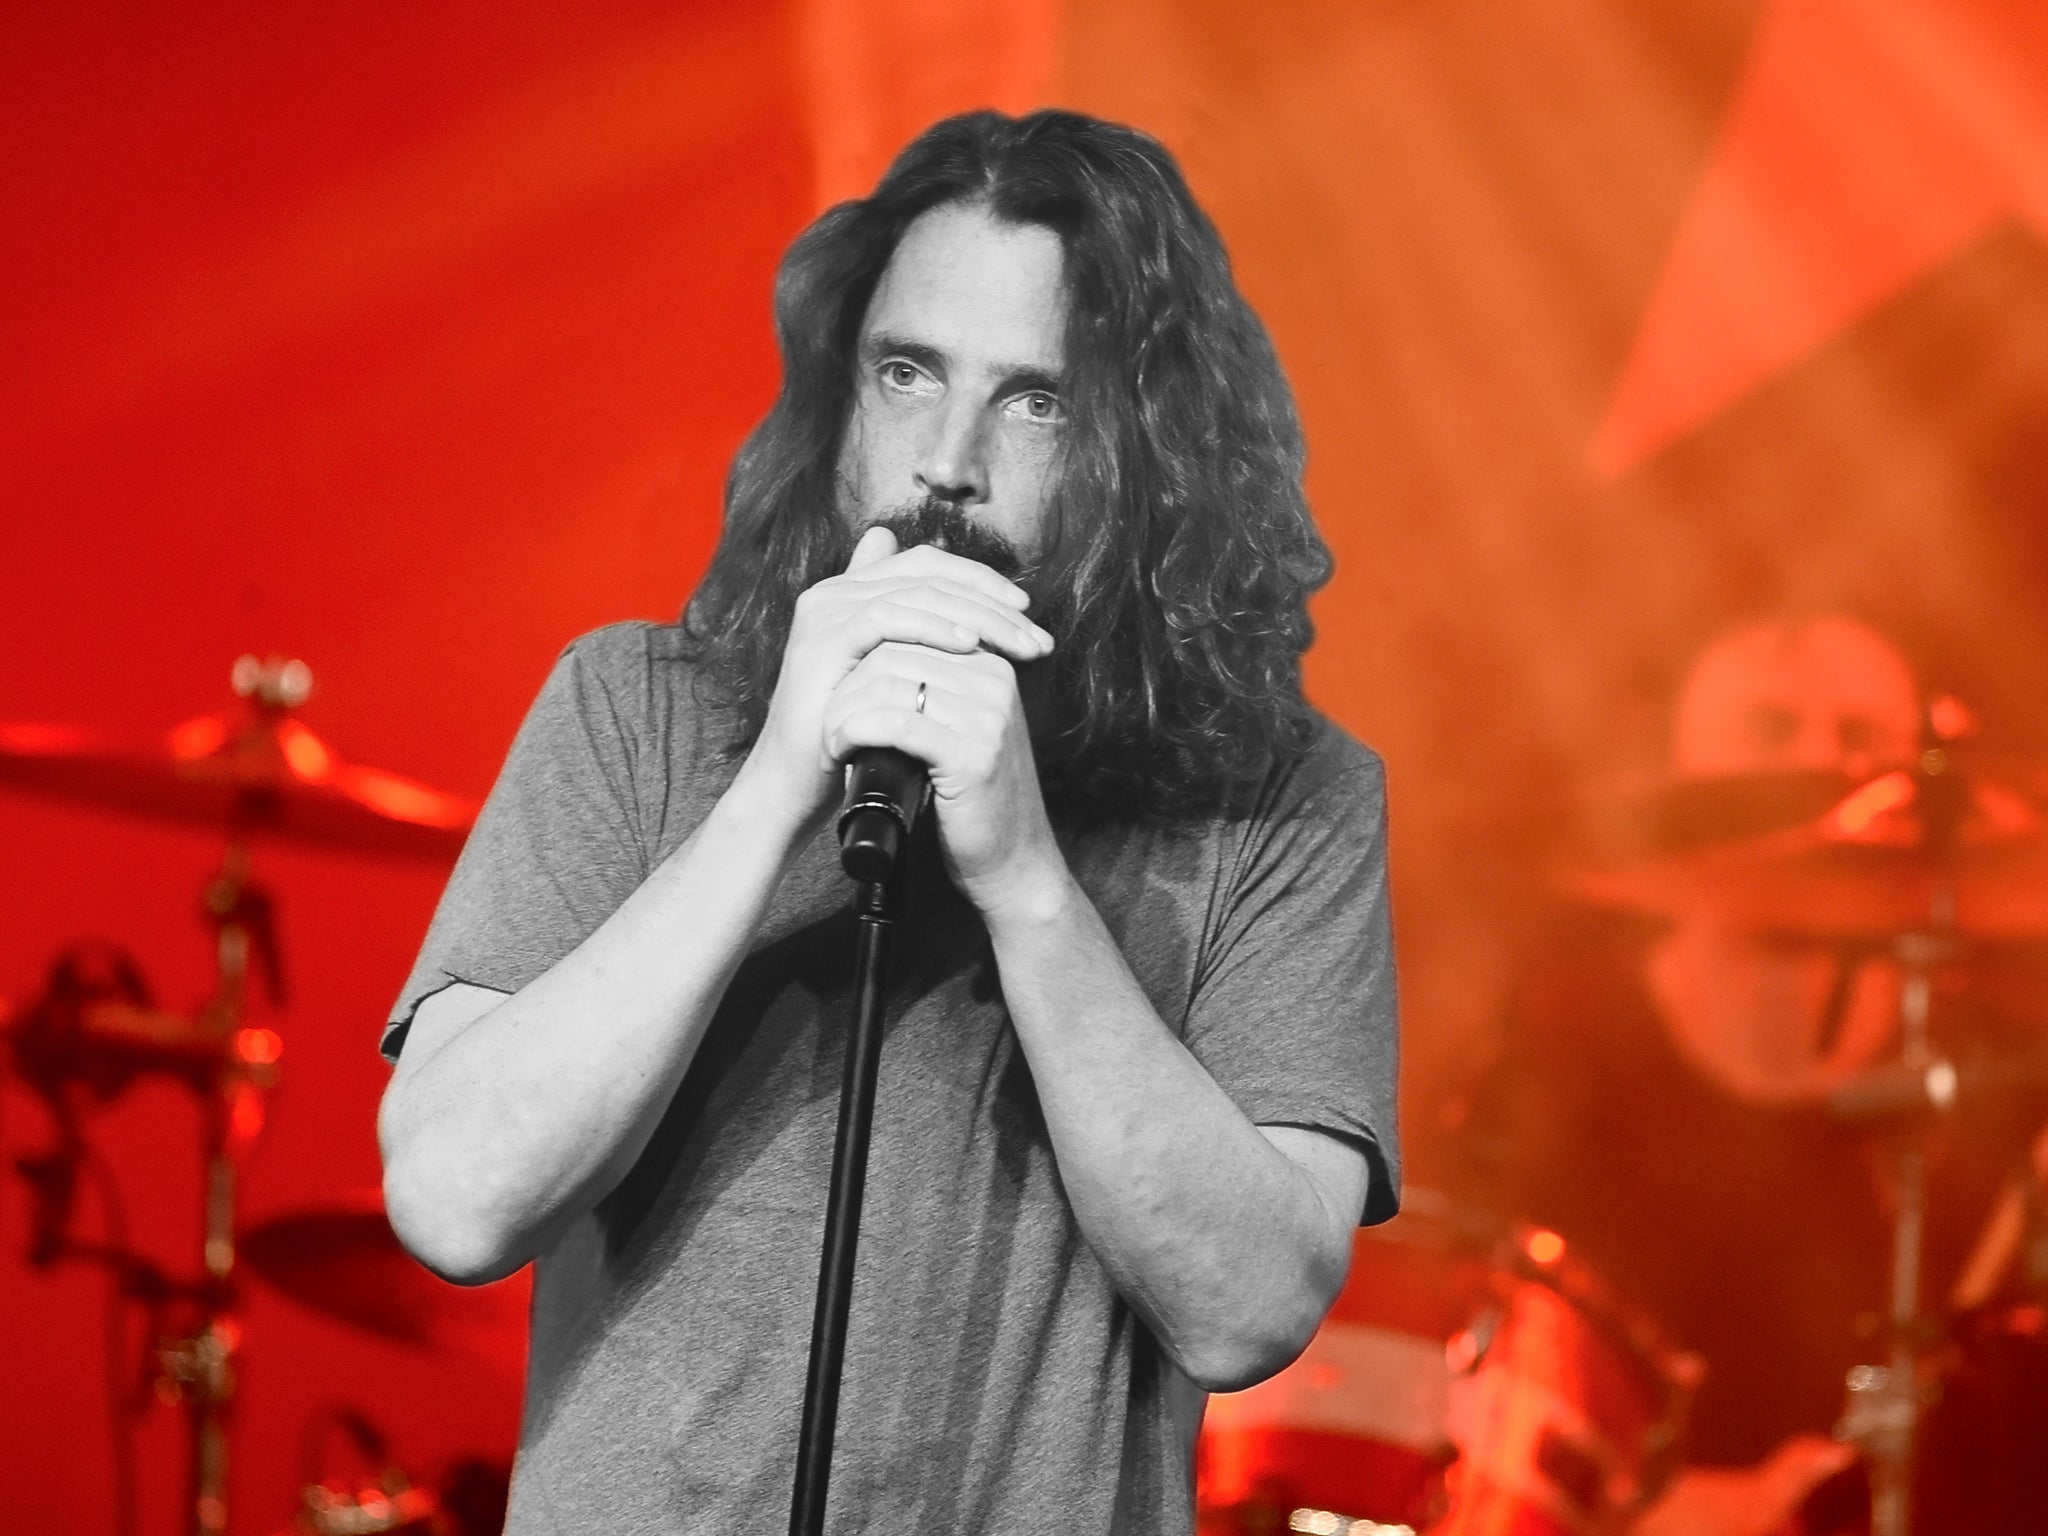 Chris Cornell's raw vocal feed from 'Black Hole Sun' is breathtaking